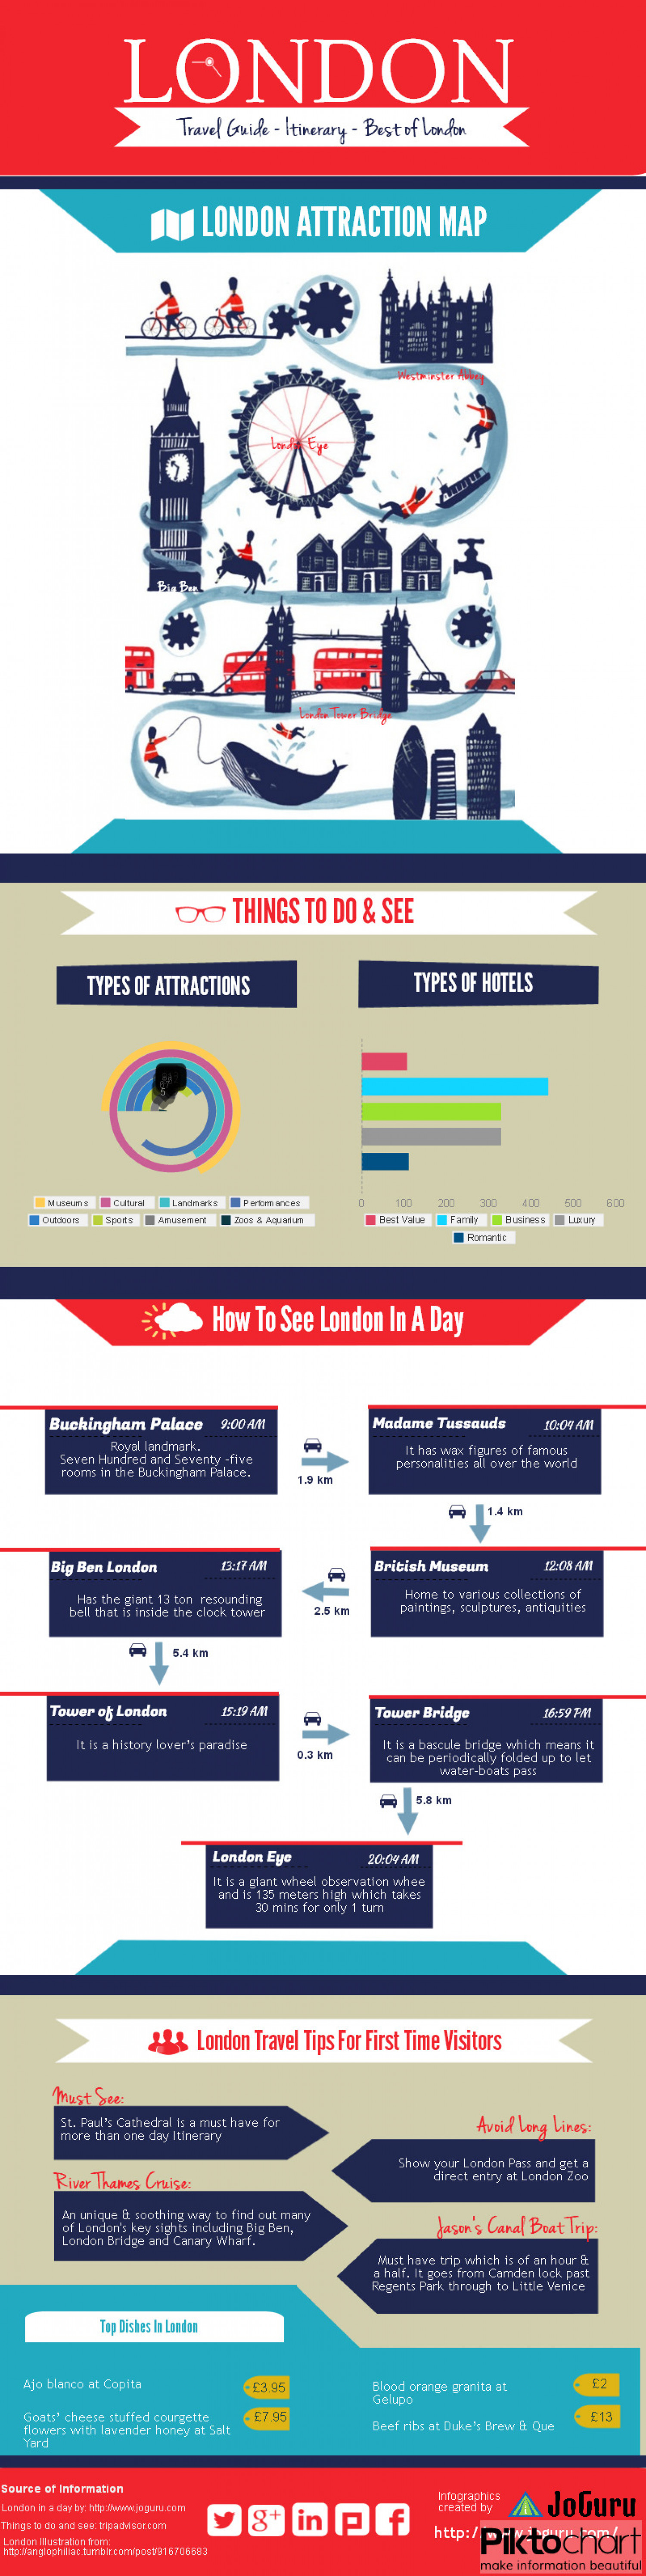 One Day In London Infographic